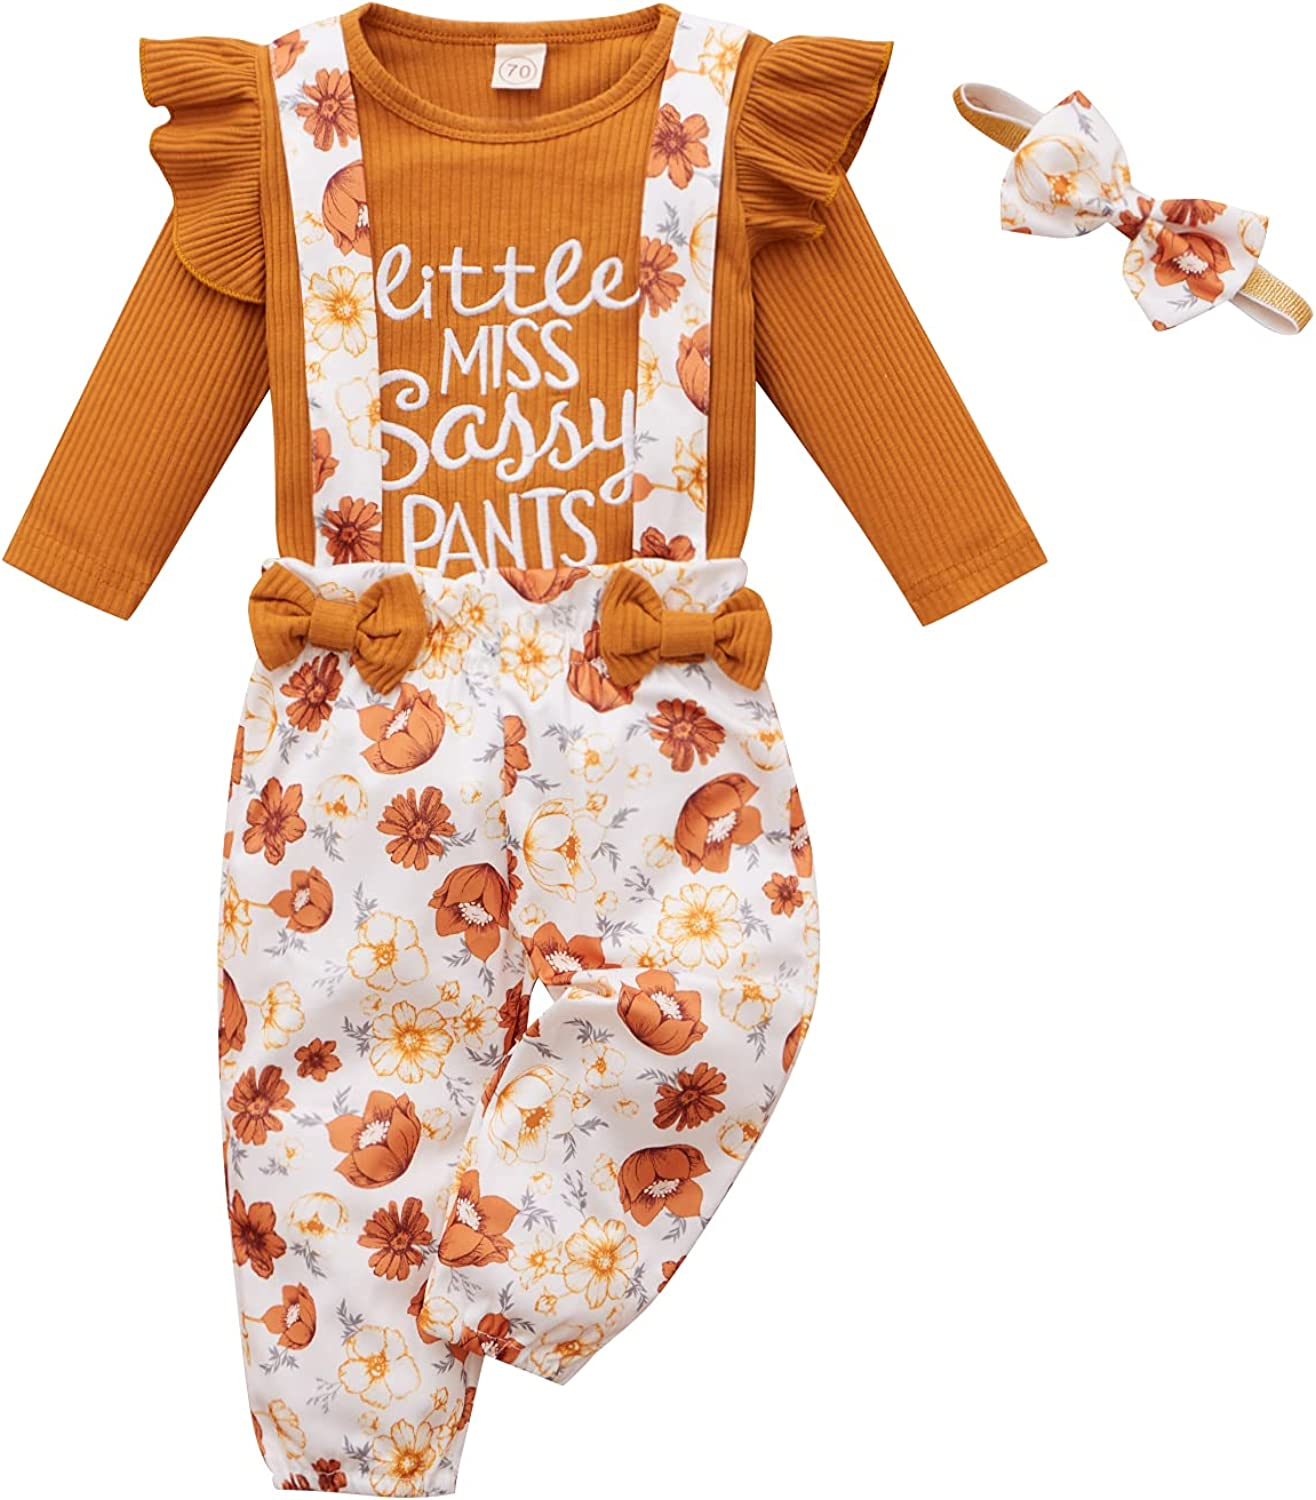 Autumn Winter Newborn Outfits Baby Girls Cute Long Sleeve Romper Bodysuit Top And Floral Long Pants Headband 3Pcs